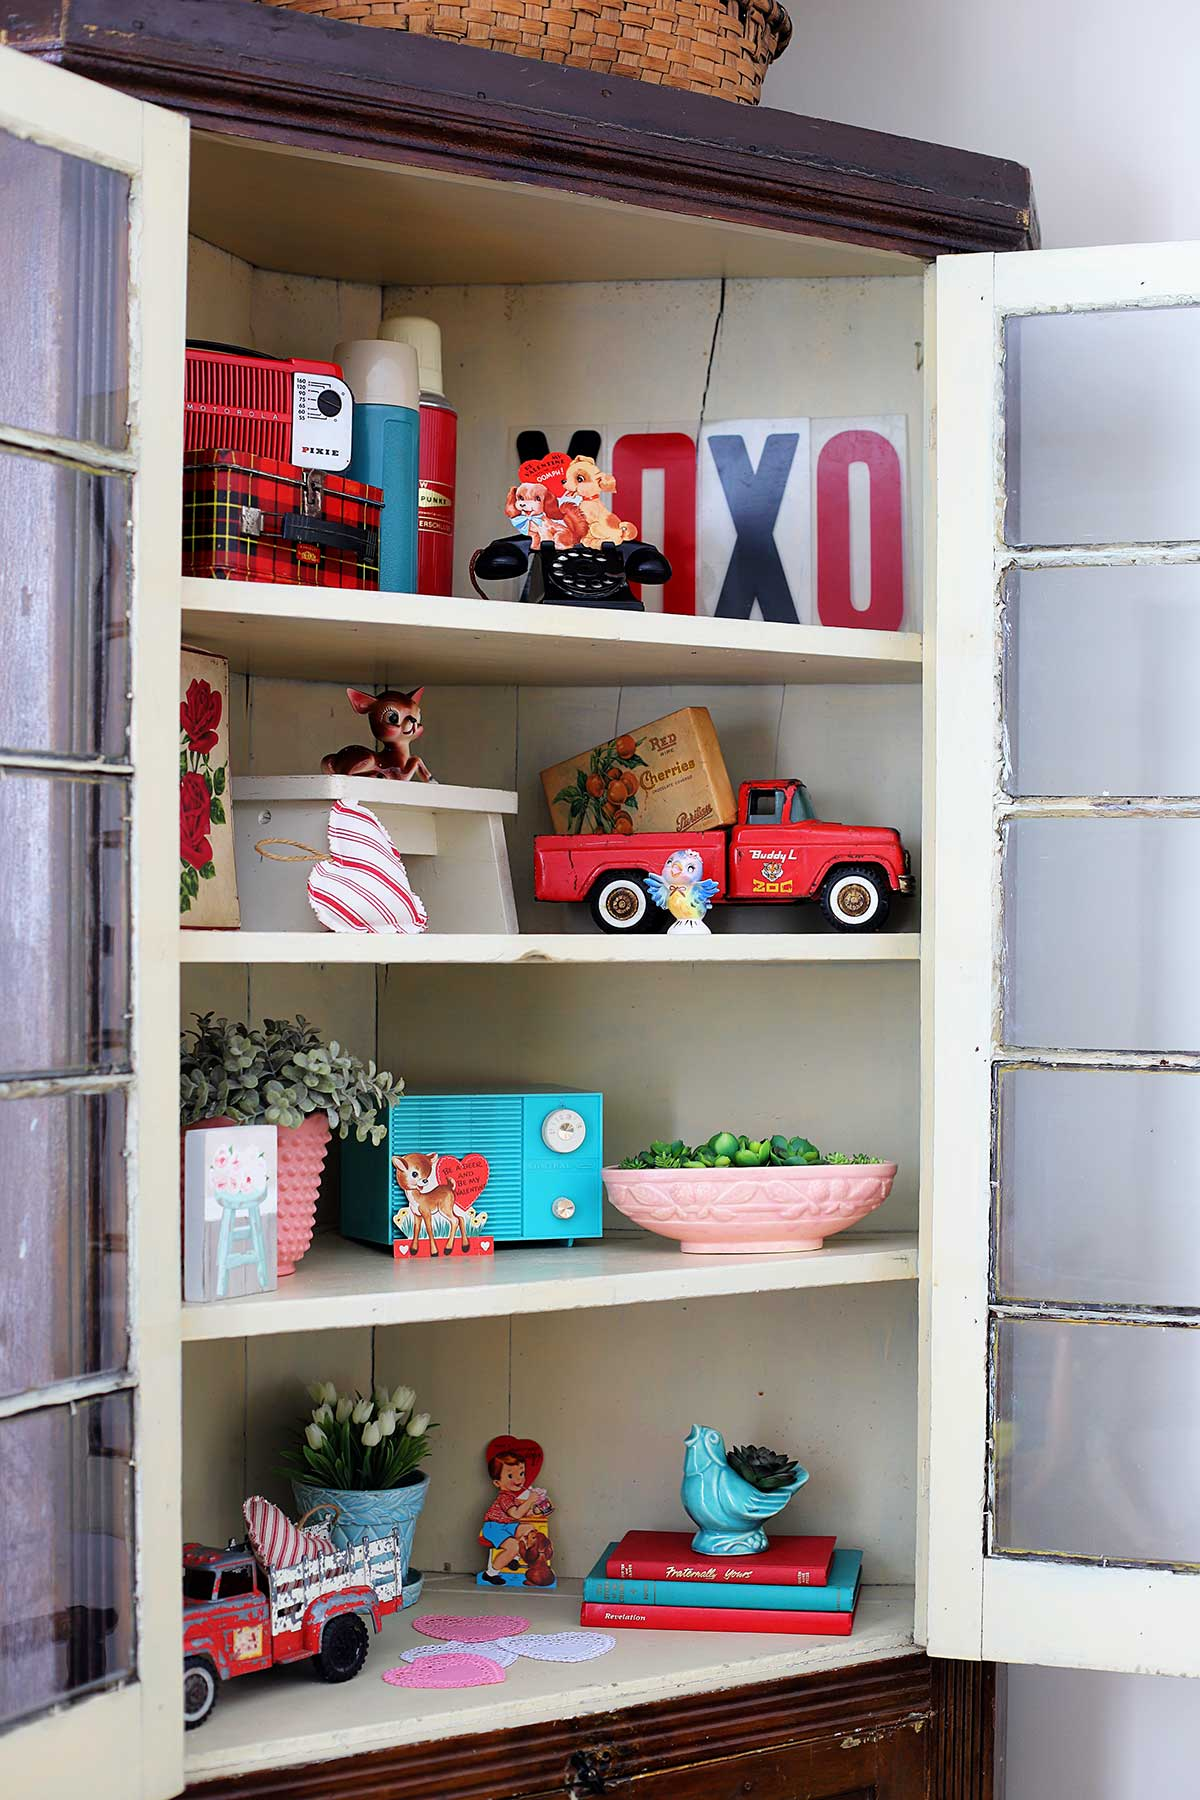 cabinet filled with vintage pottery, red trucks, classroom Valentines and more thrift store finds